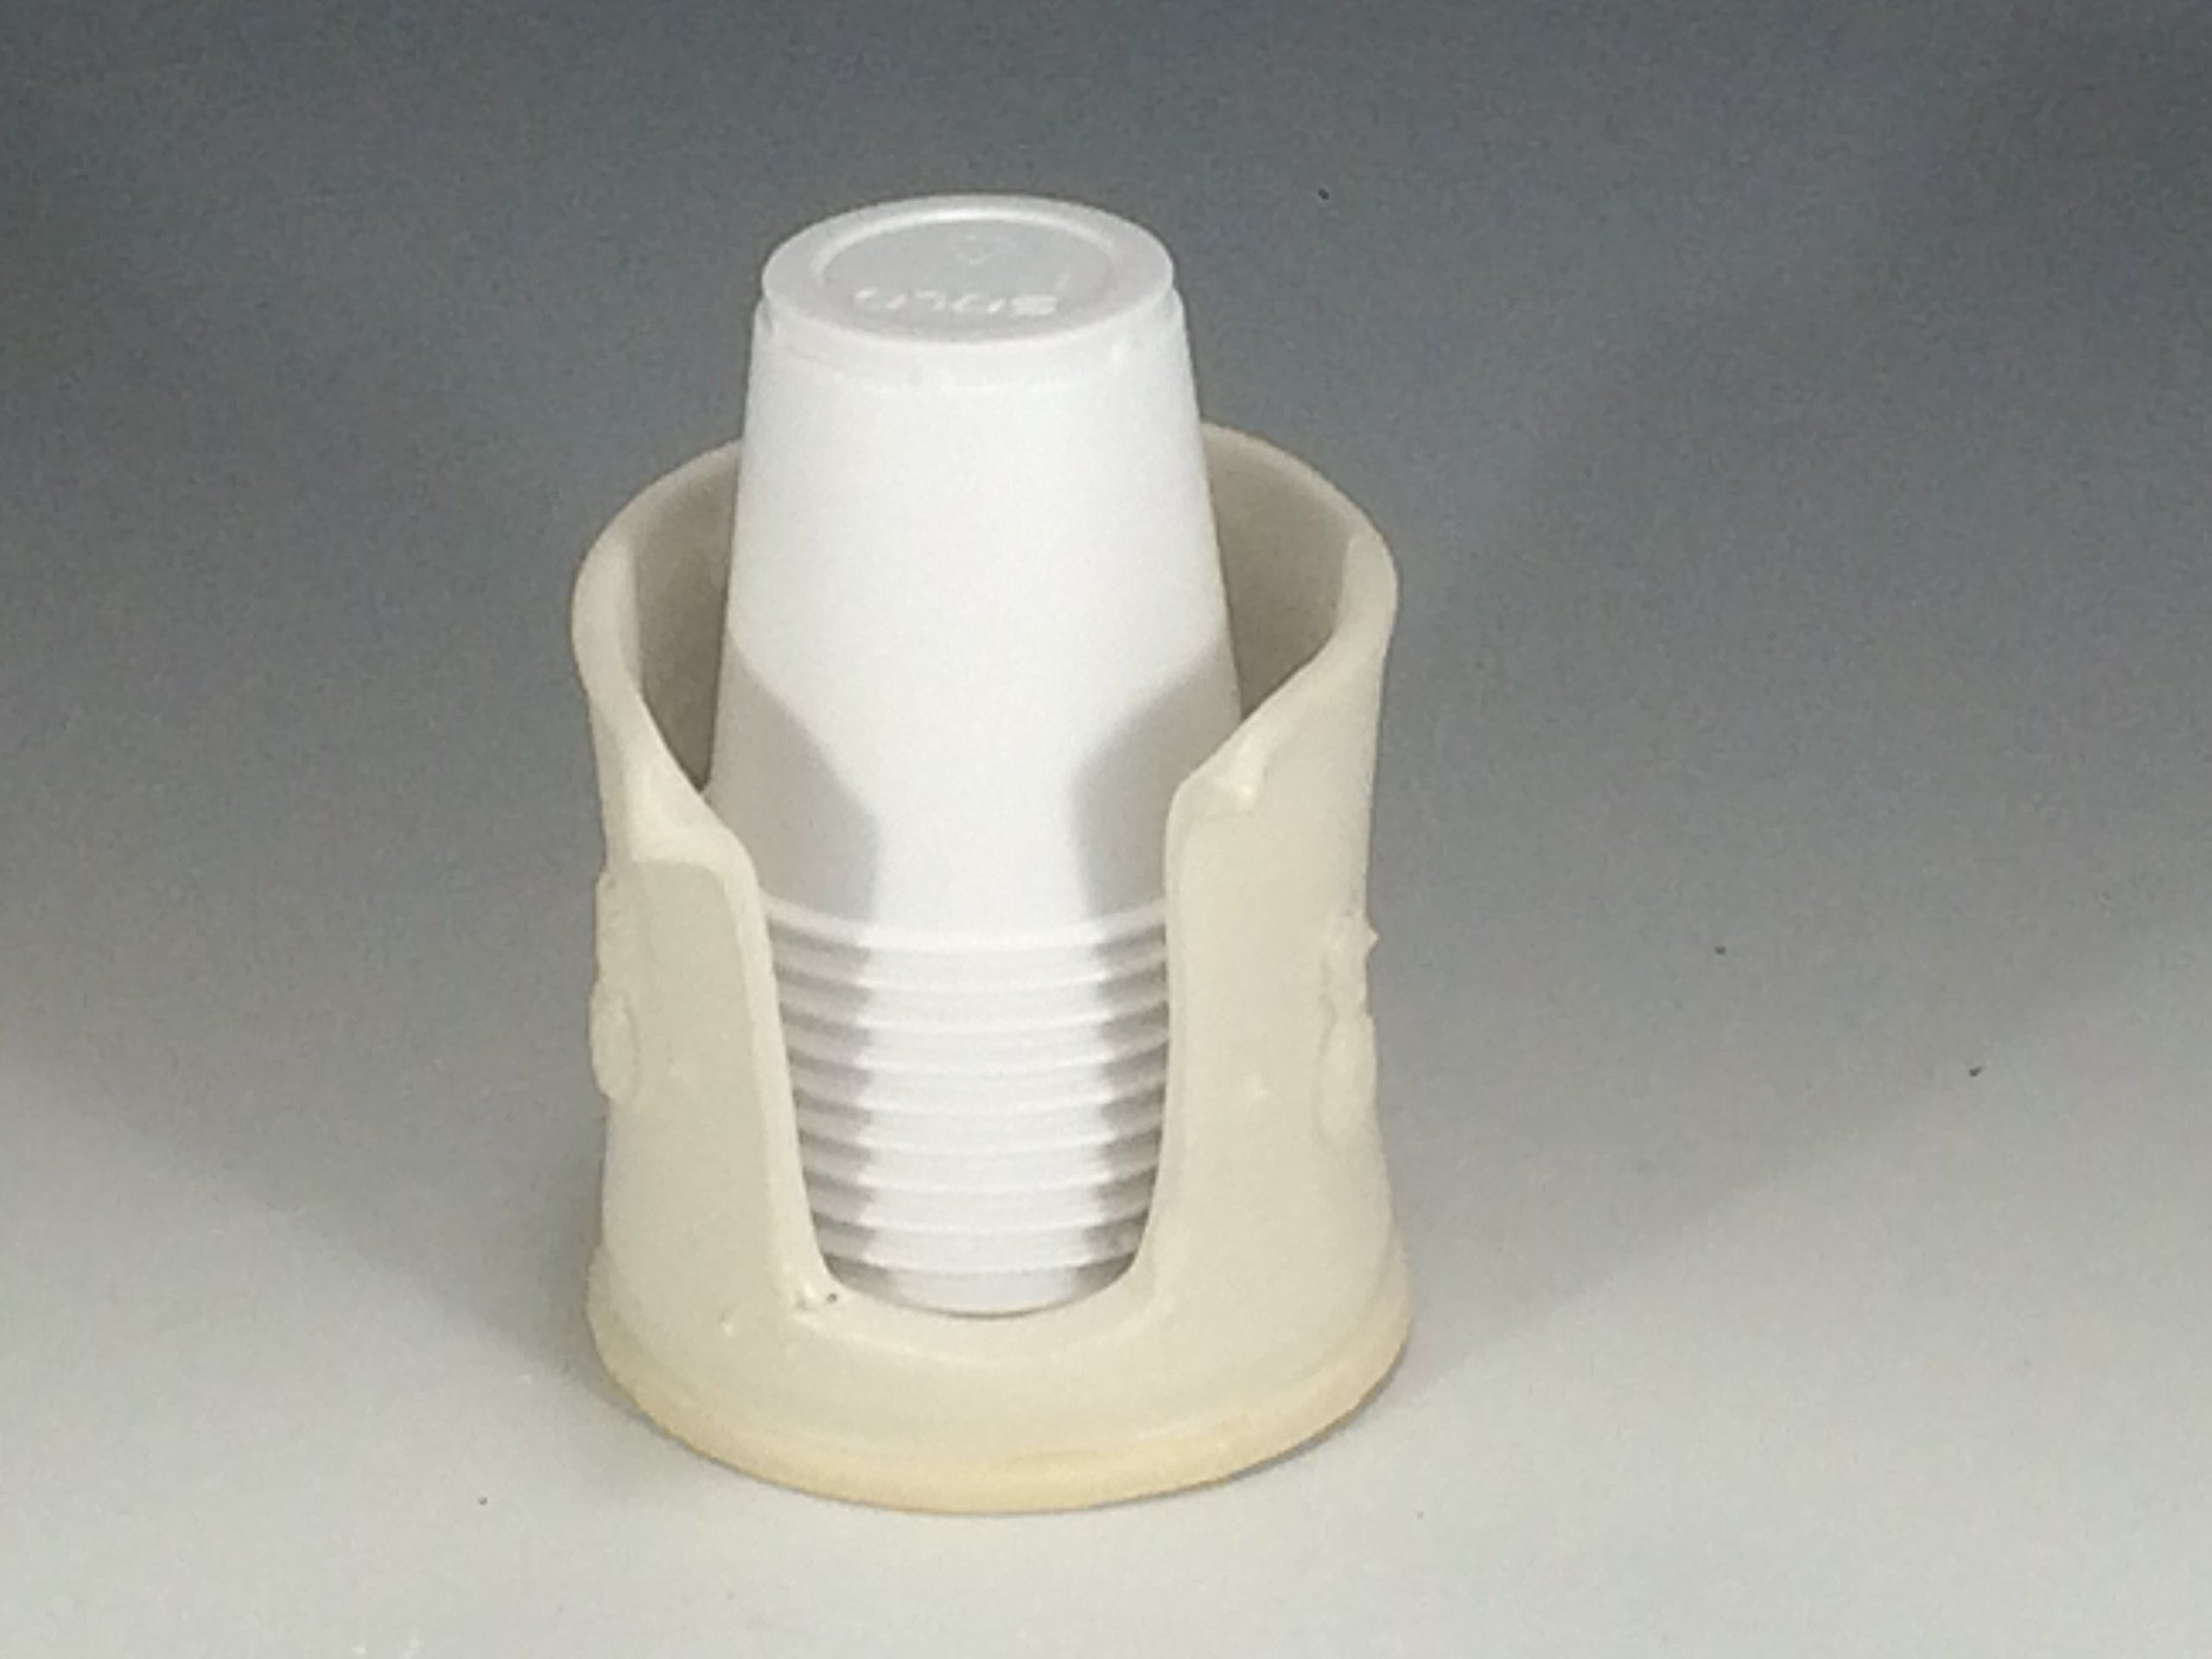 3 Ounce   Handmade Pineapple Embelished Bathroom Cup Holder (3 Oz) In Matte  White